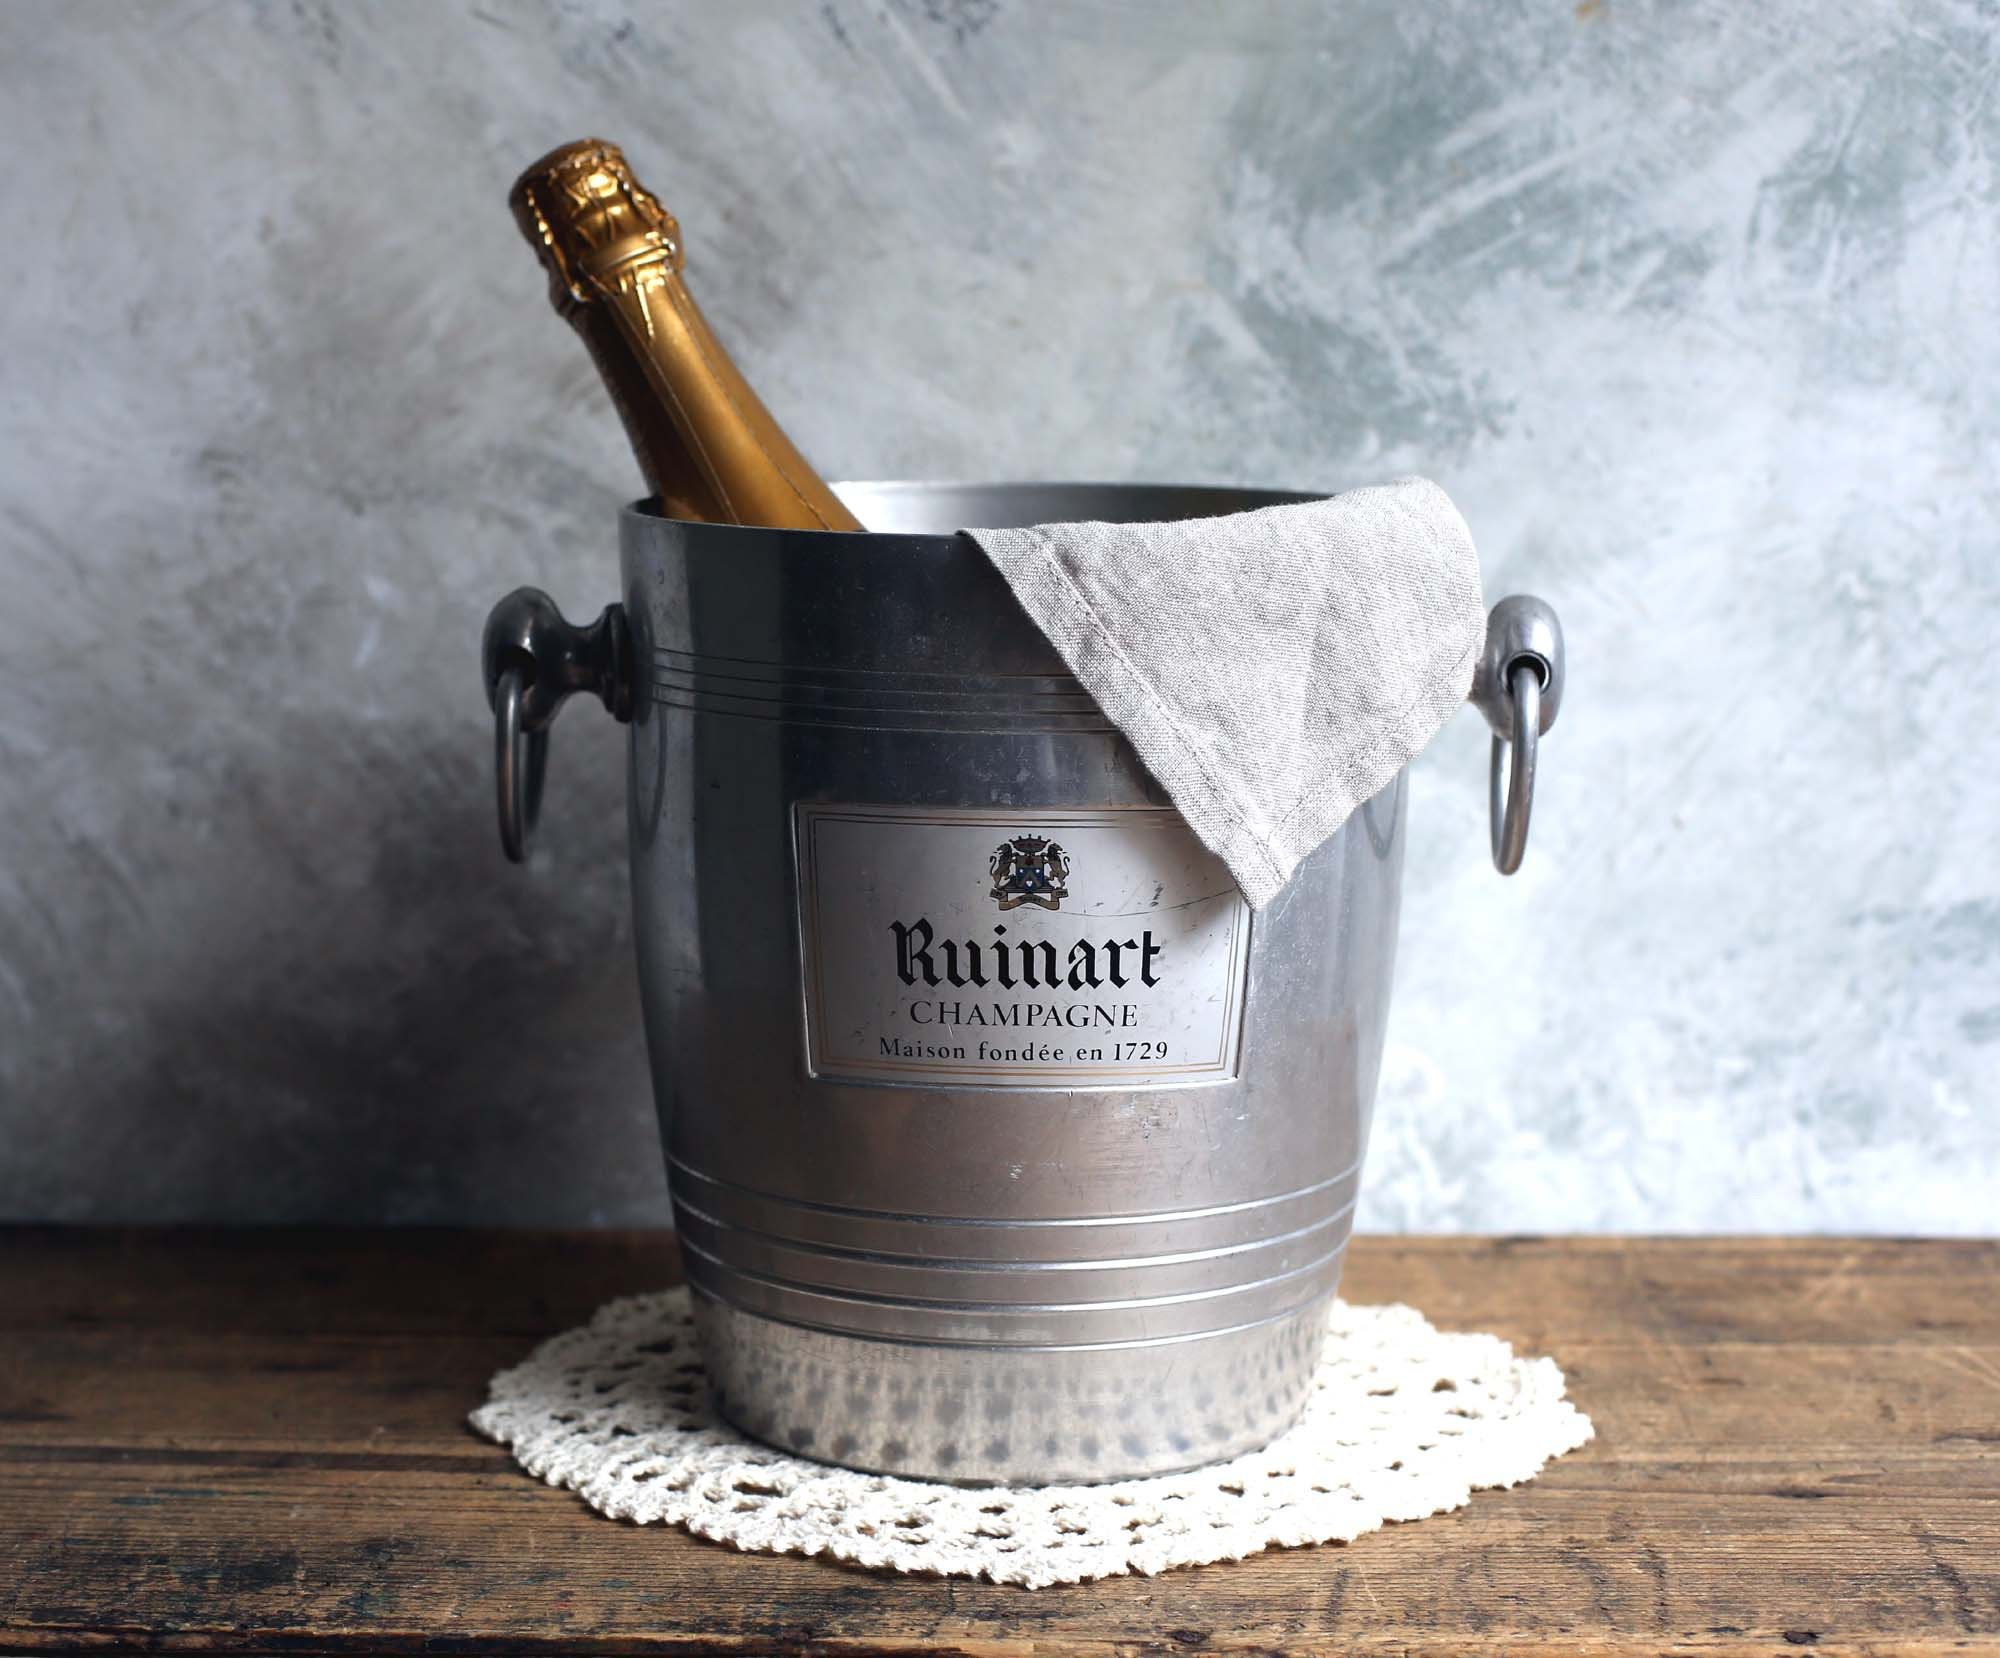 Ruinart Champagne Ice Bucket Vintage French Metal Wine Cooler Champagne Buckets Champagne Ice Bucket Champagne